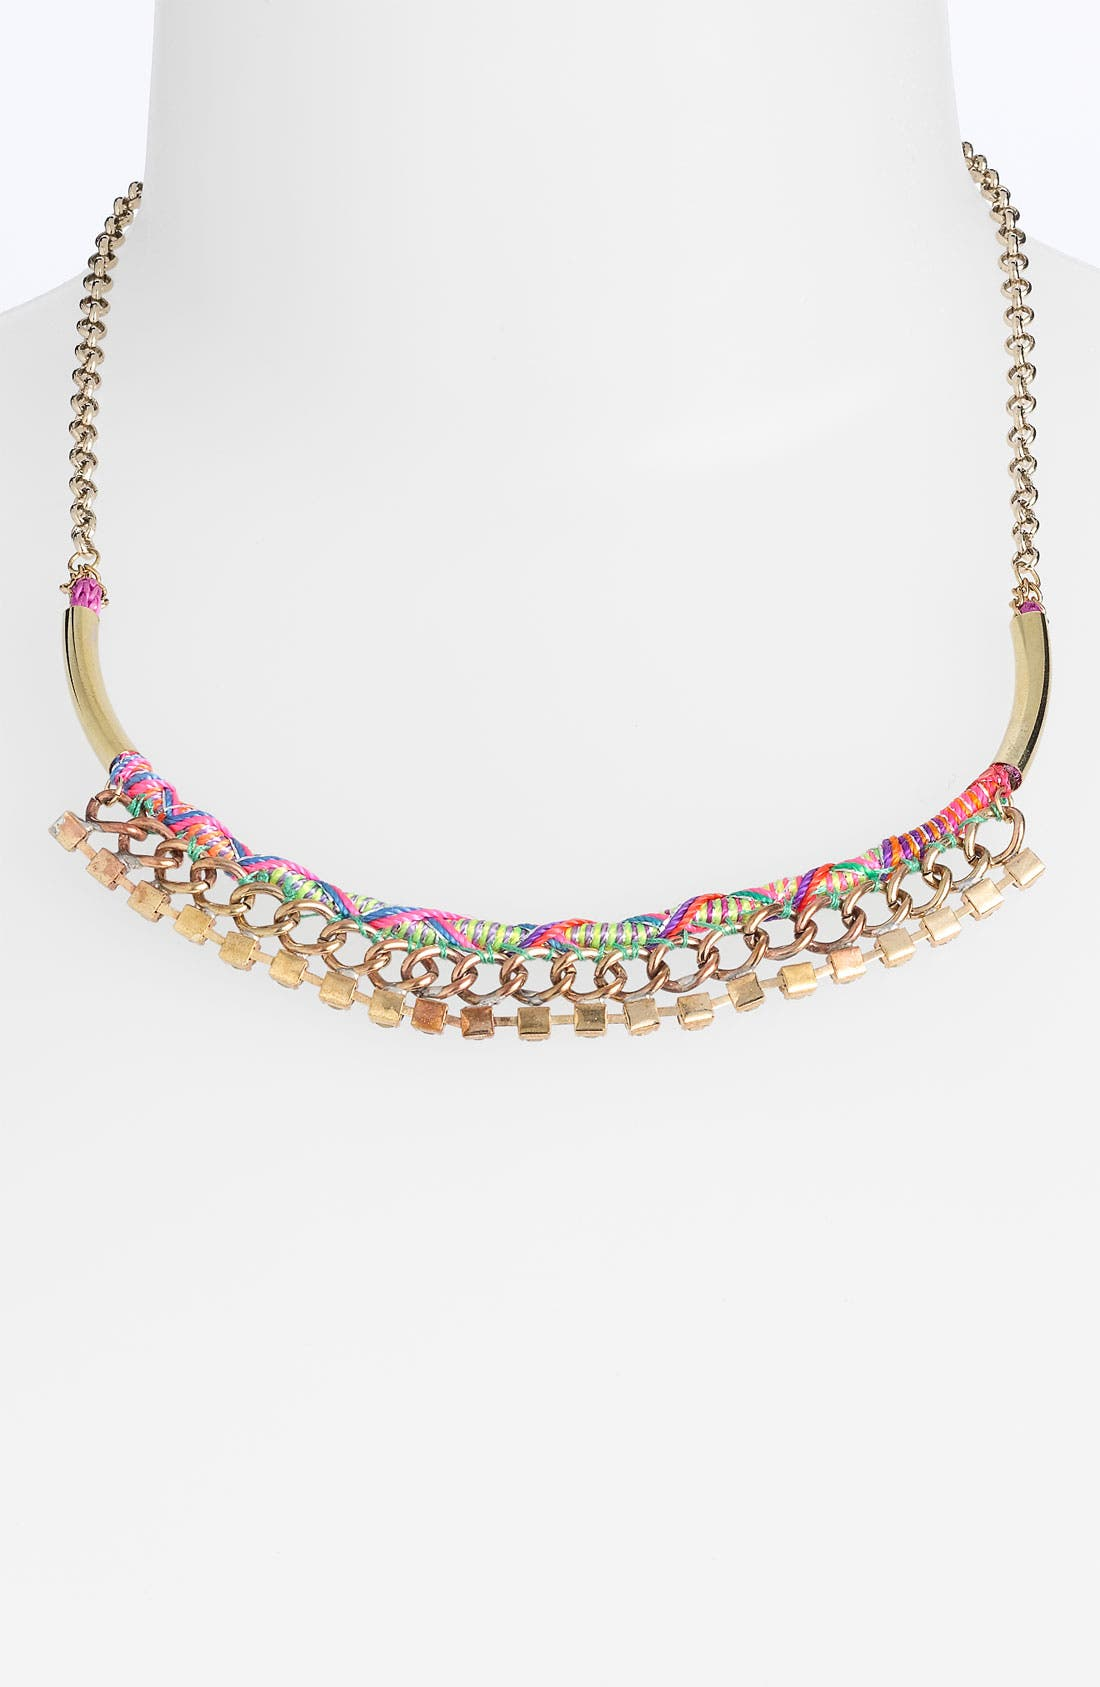 Main Image - Stephan & Co. Friendship Chain Necklace